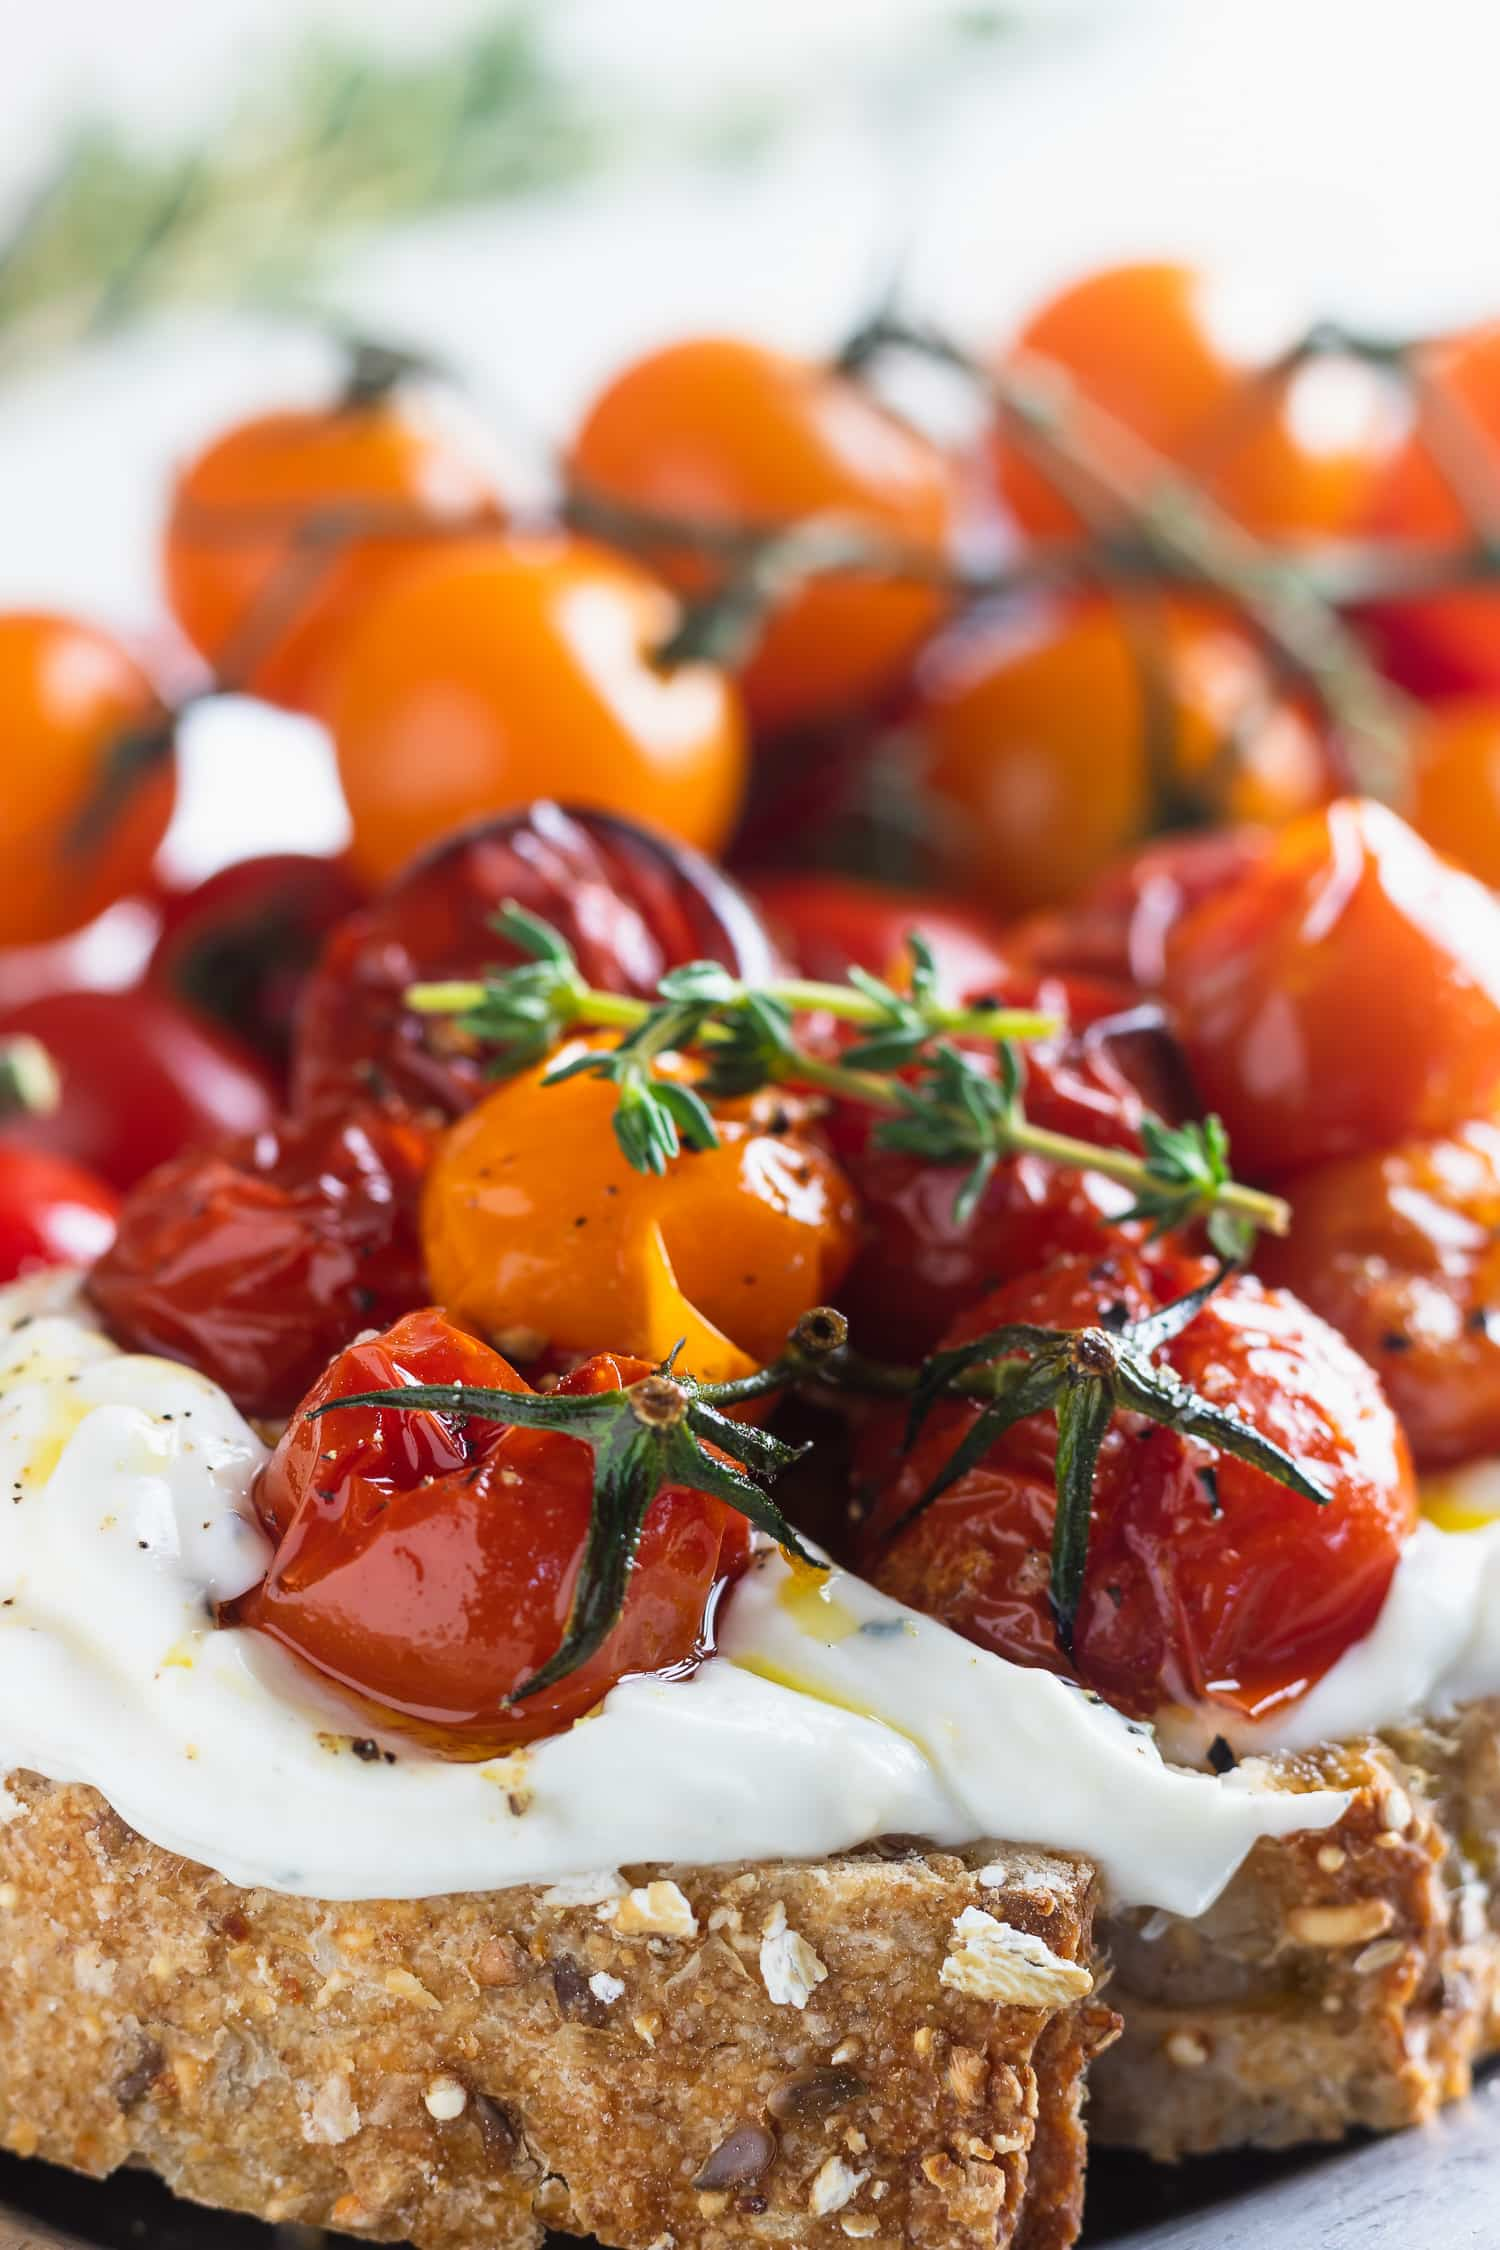 roasted tomato confit on whipped ricotta